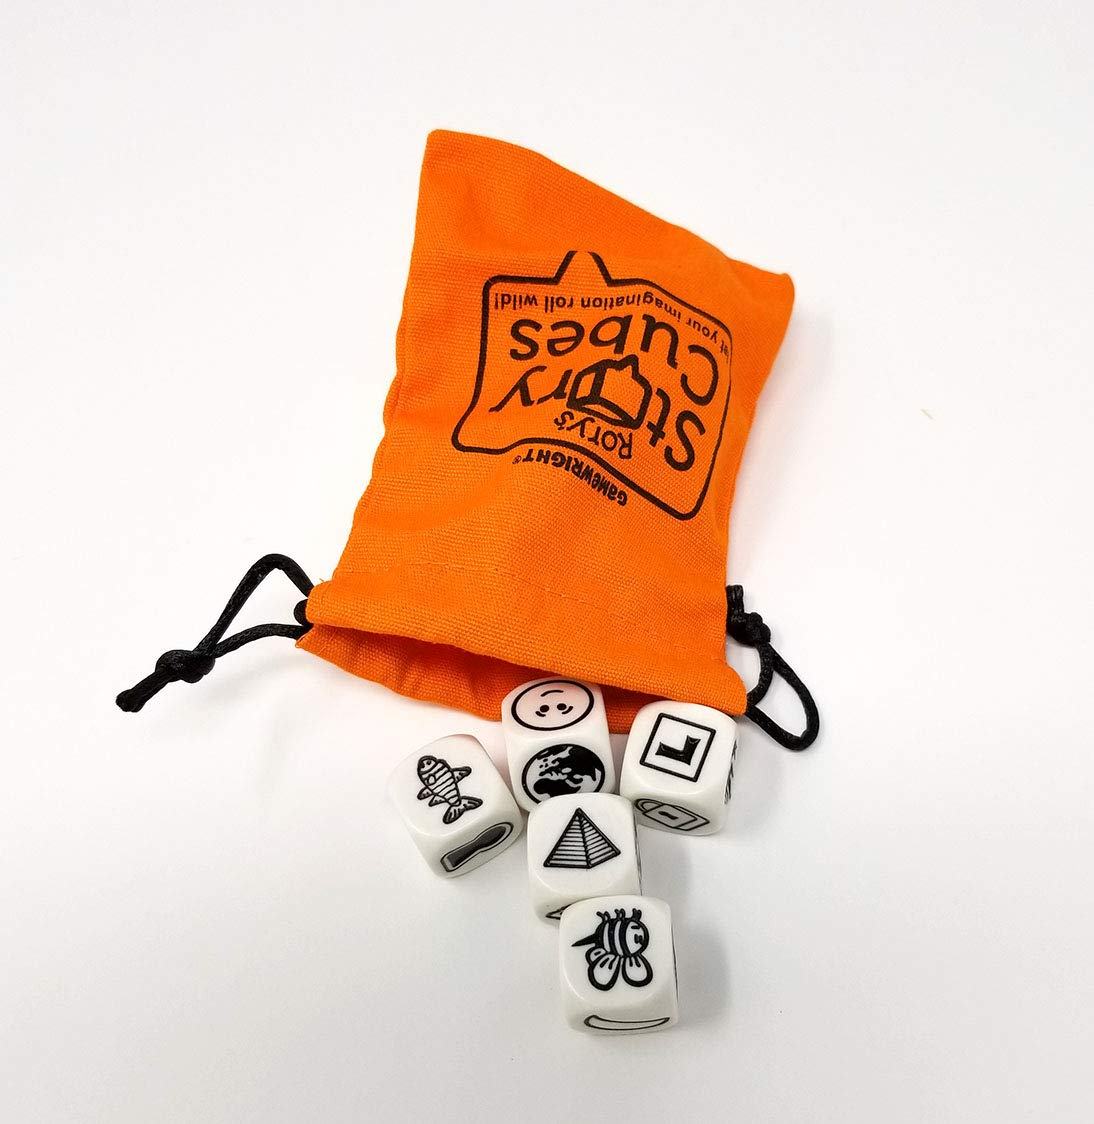 Rory's Story Cube Complete Set - Original, Actions, Voyages, Fantasia Games, & Drawstring Bag by Gamewright (Image #3)